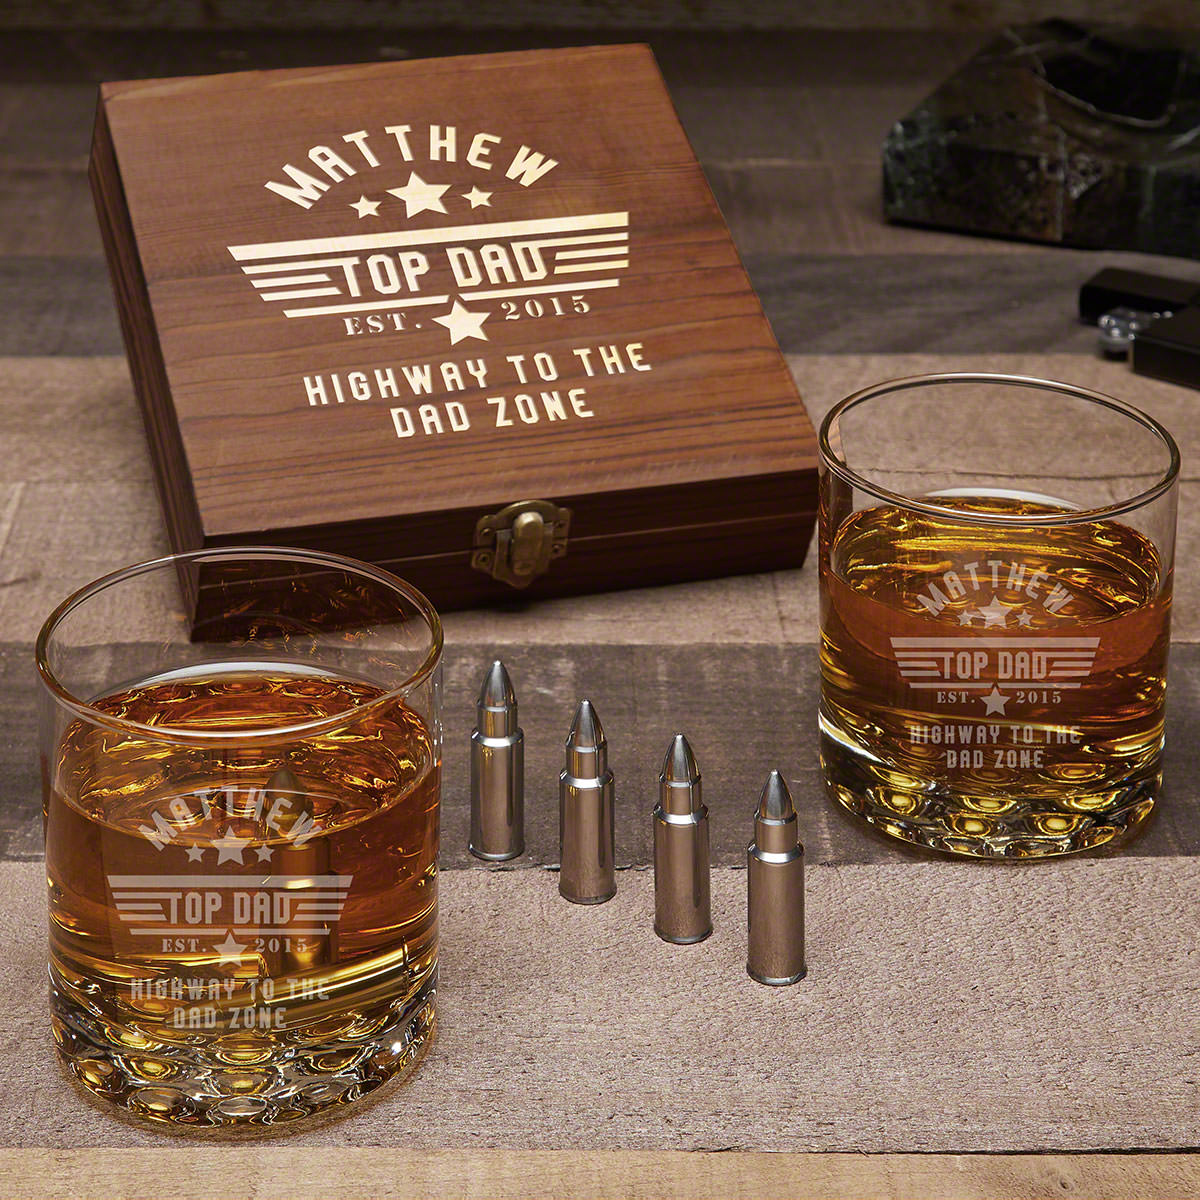 Top Dad Personalized Bullet Whiskey Stone Gifts for Dad